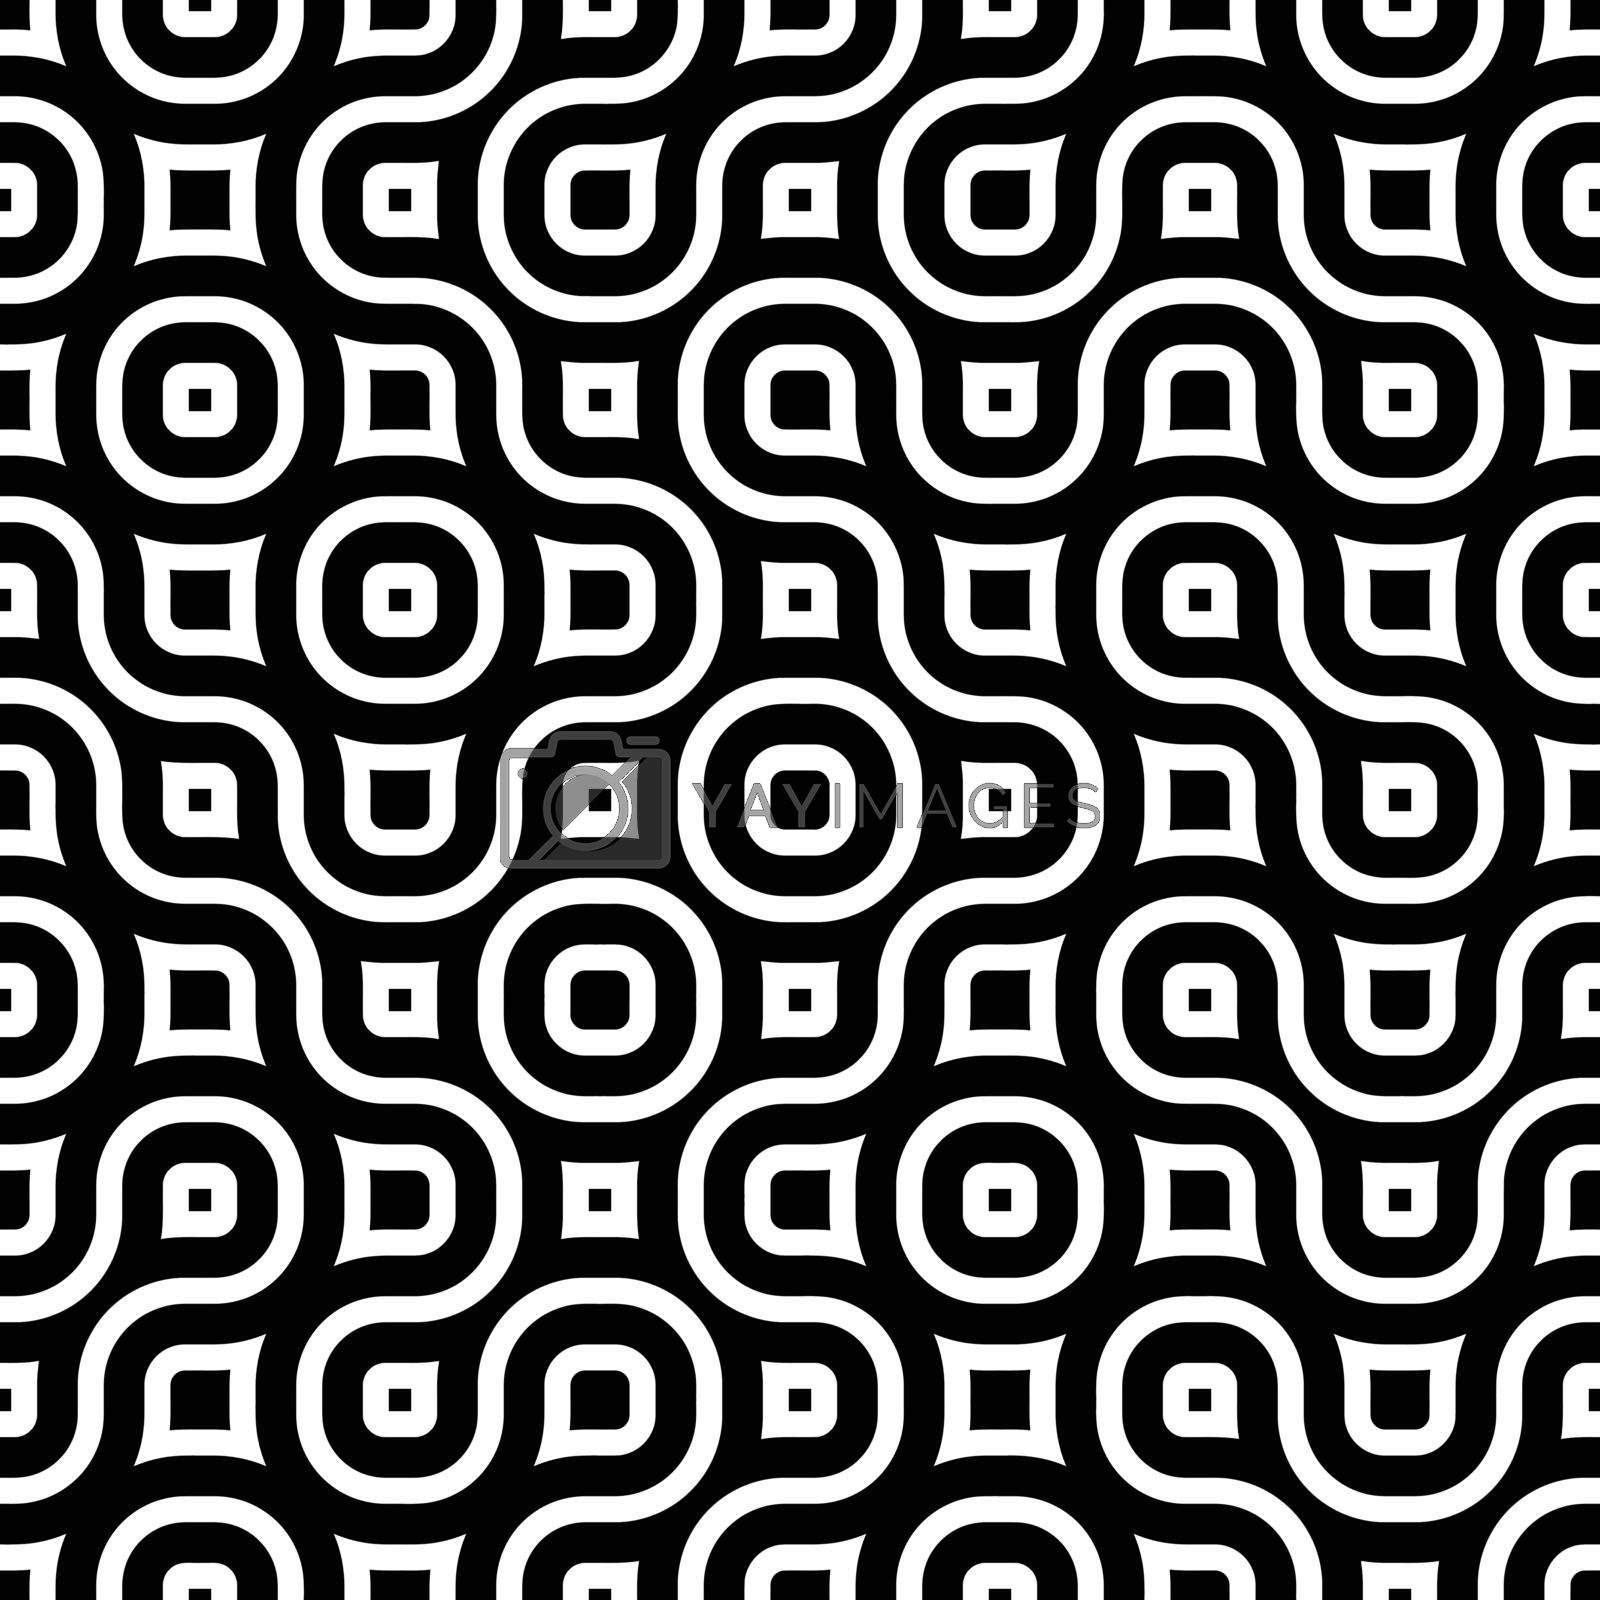 Vector seamless black and white tangled round stripes geometric vintage pattern abstract background. perfectly suited for wallpaper, web design, textile, fabric